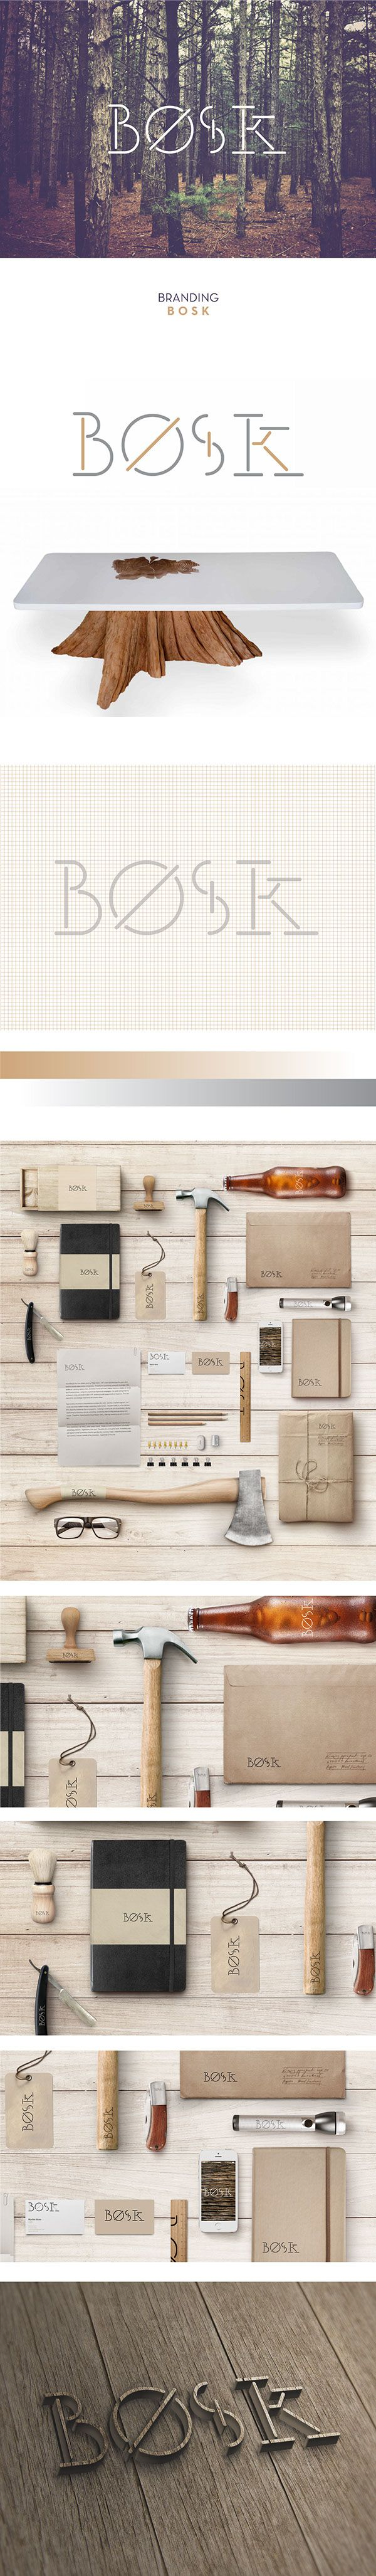 Bosk on Behance by Diogo Pisoeiro curated by Packaging Diva PD. Gorgeous wood…